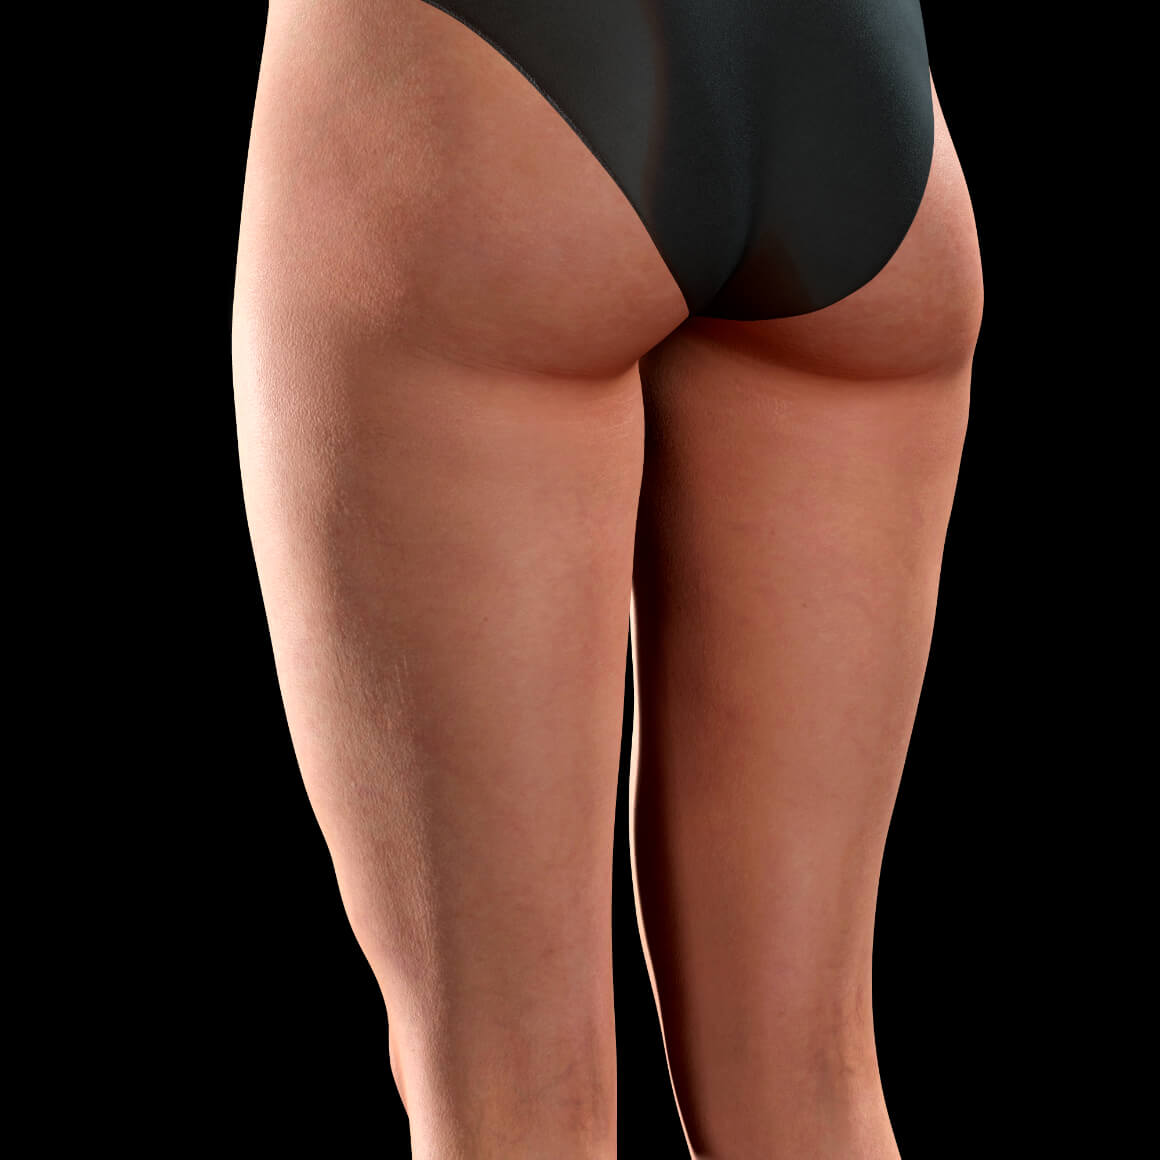 Female patient from Clinique Chloé positioned at an angle after TightSculpting laser treatments for cellulite treatment